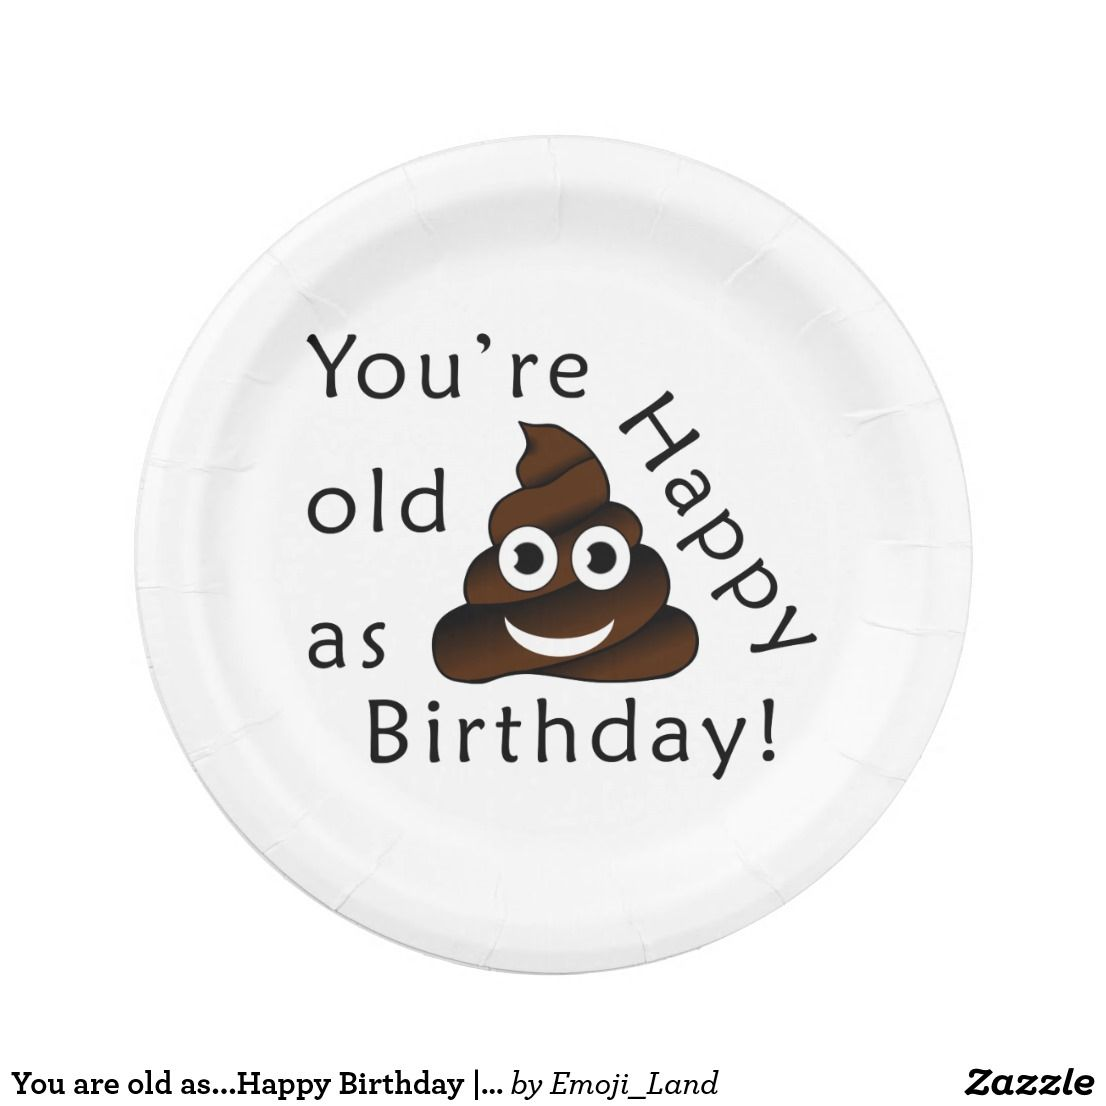 Happy Birthday   funny poop emoji Paper Plate  sc 1 st  Pinterest & You are old as...Happy Birthday   funny poop emoji Paper Plate ...